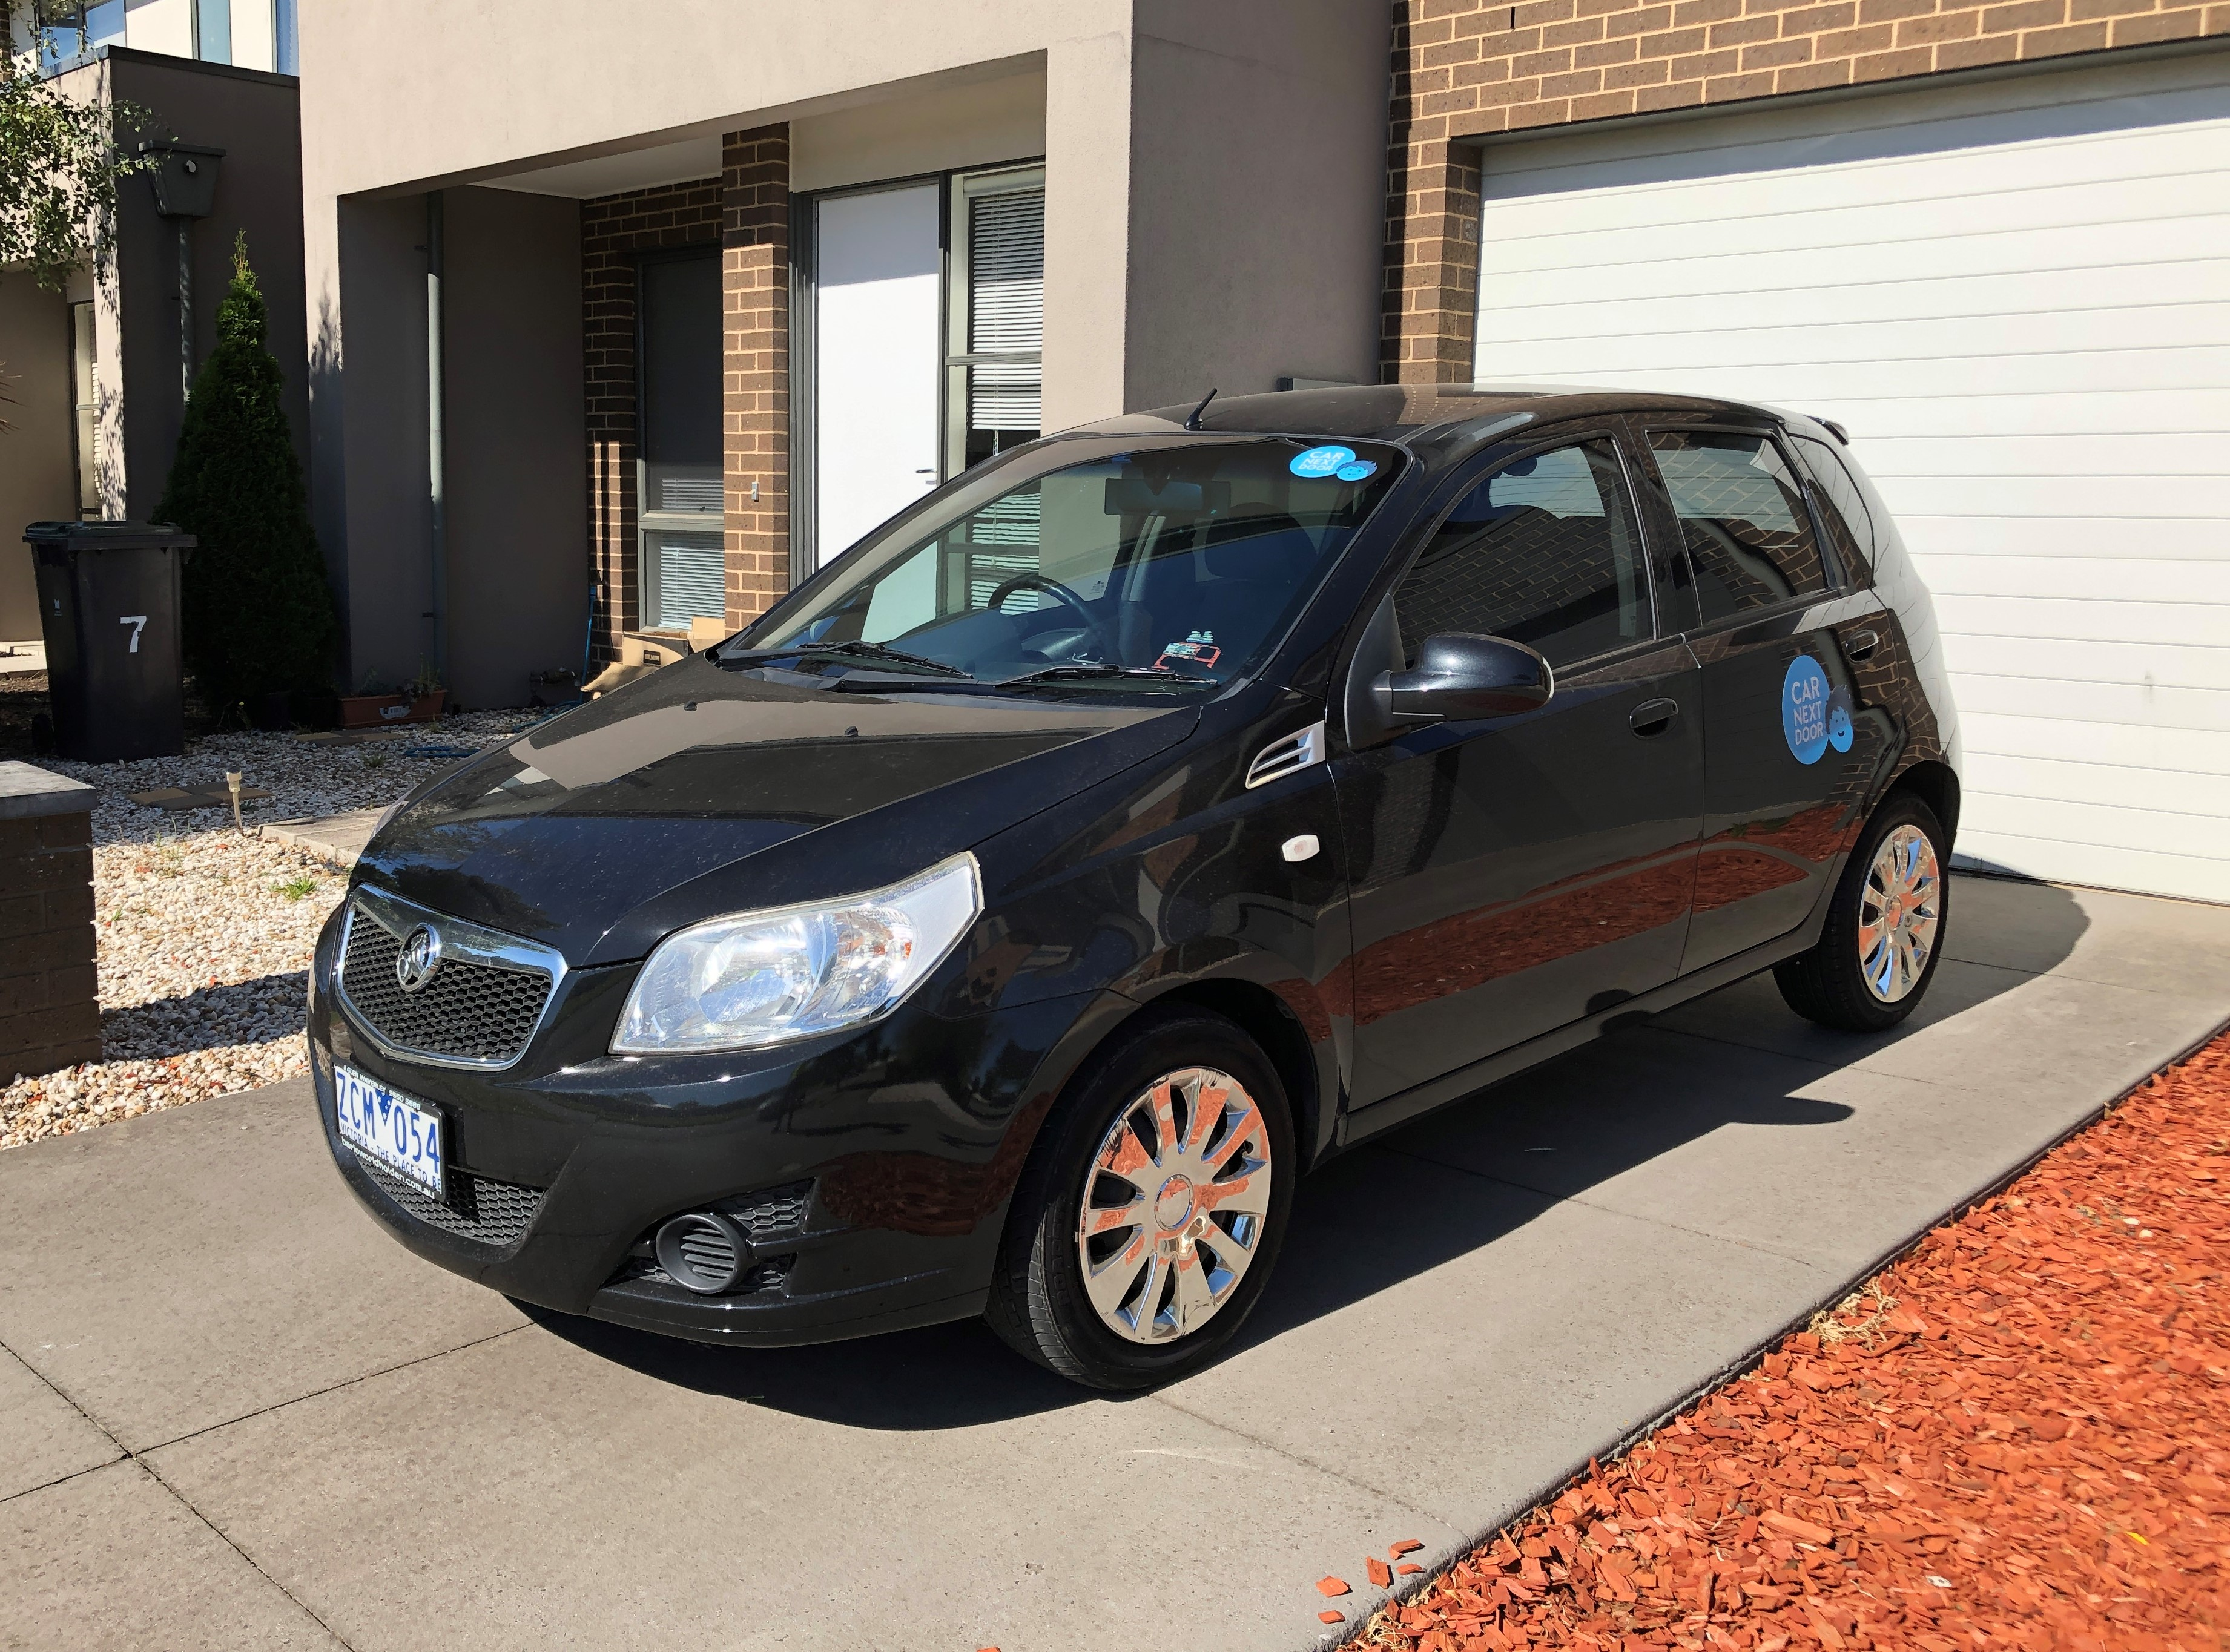 Picture of Jean marc's 2009 Holden Barina